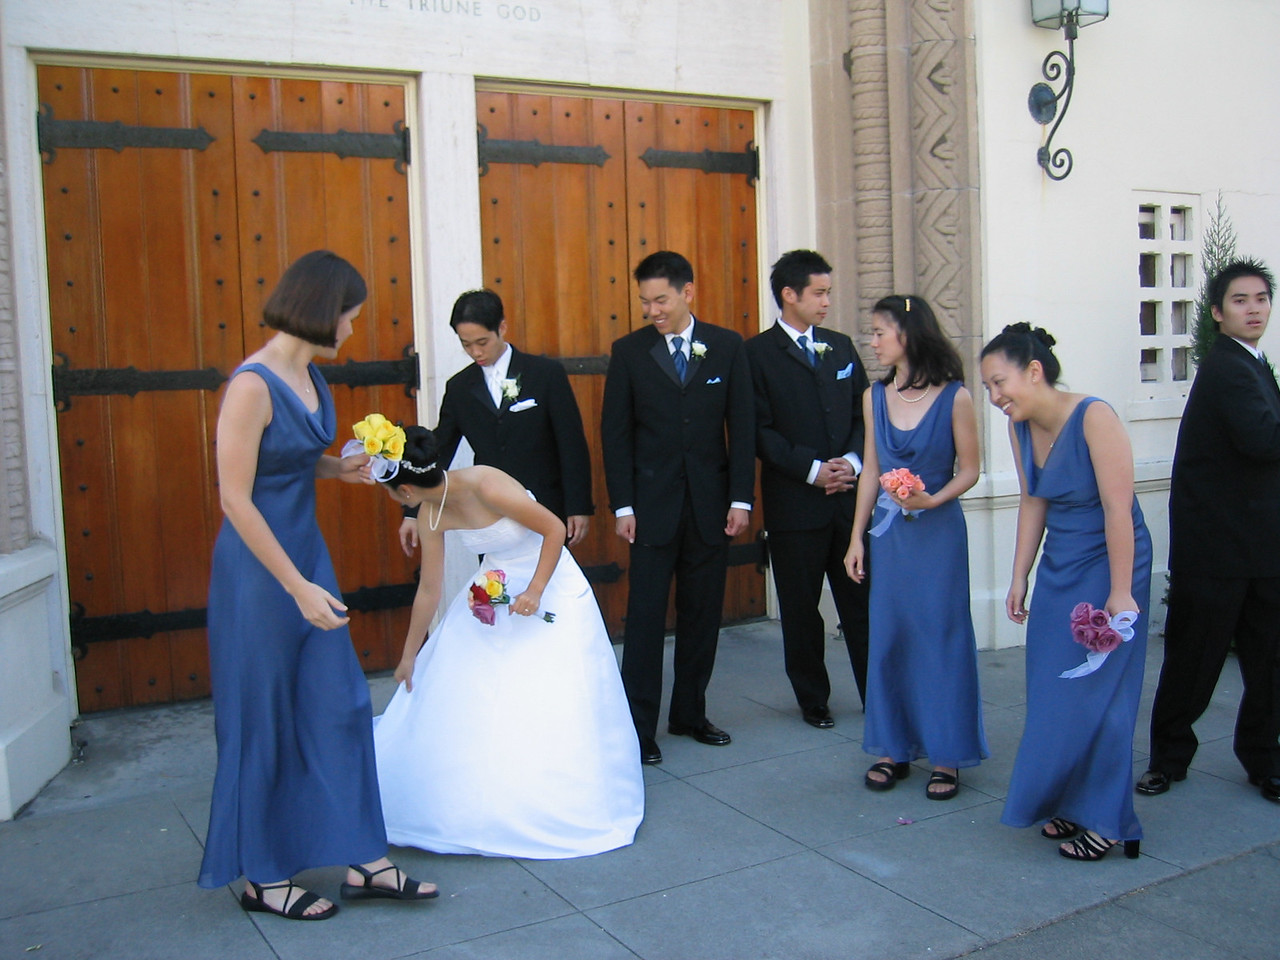 Photo shoot outside Grace Lutheran Church - Wedding Party looks for rest of dress